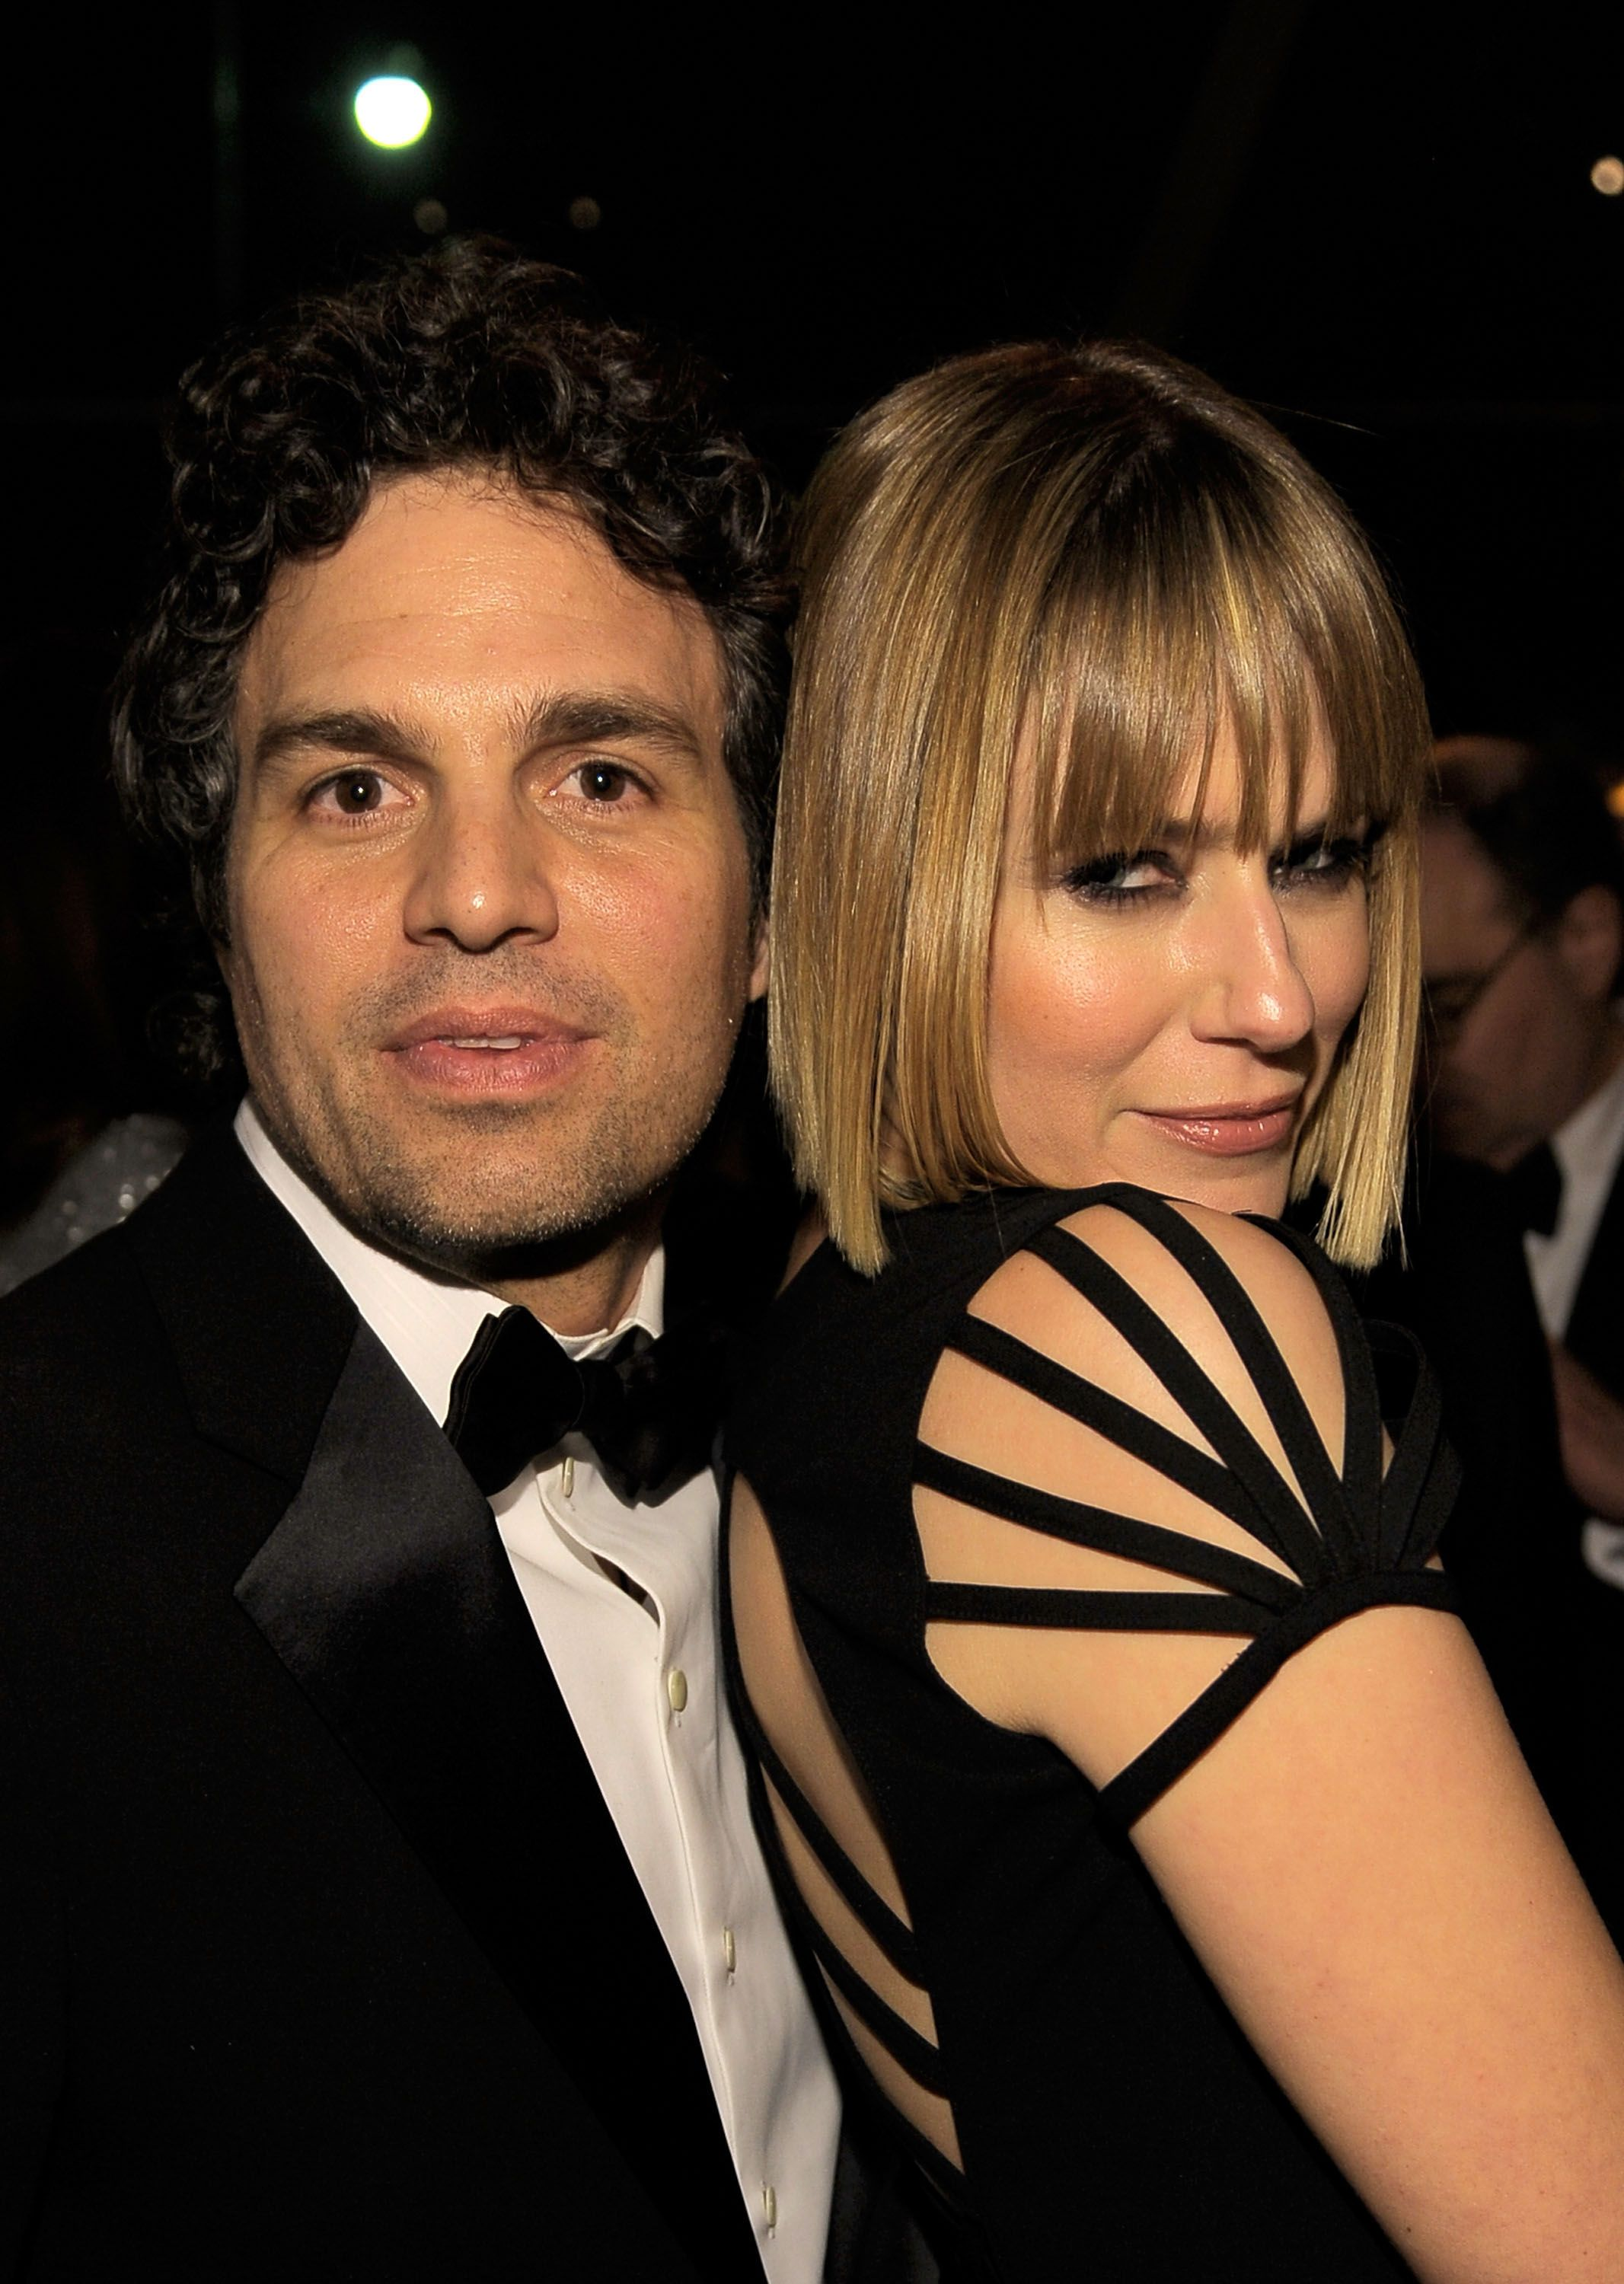 mark ruffalo and his wife sunrise coigney mark ruffalo. Black Bedroom Furniture Sets. Home Design Ideas